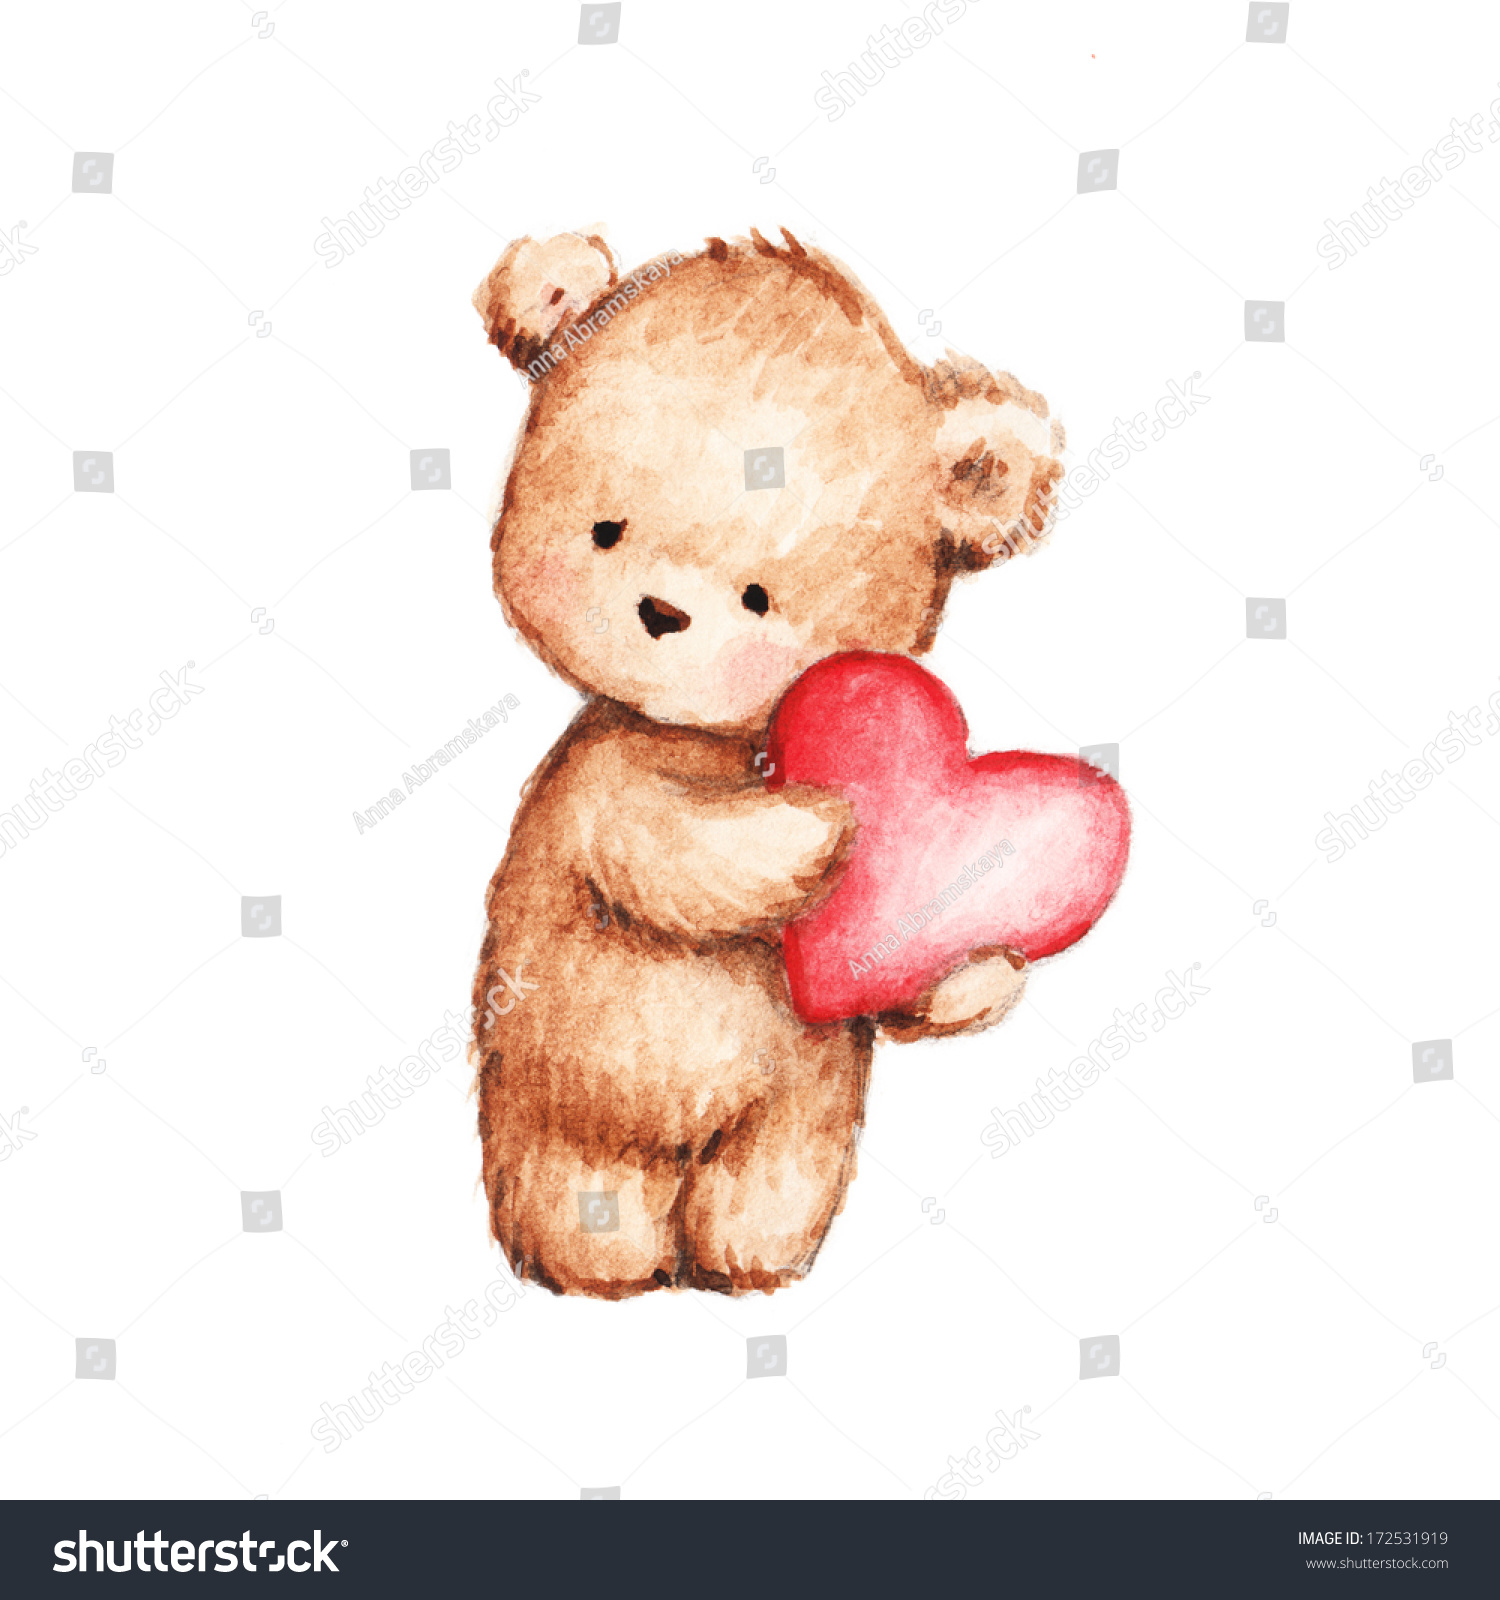 Uncategorized Drawing Of Teddy Bears drawing cute teddy bear heart stock illustration 172531919 of with heart